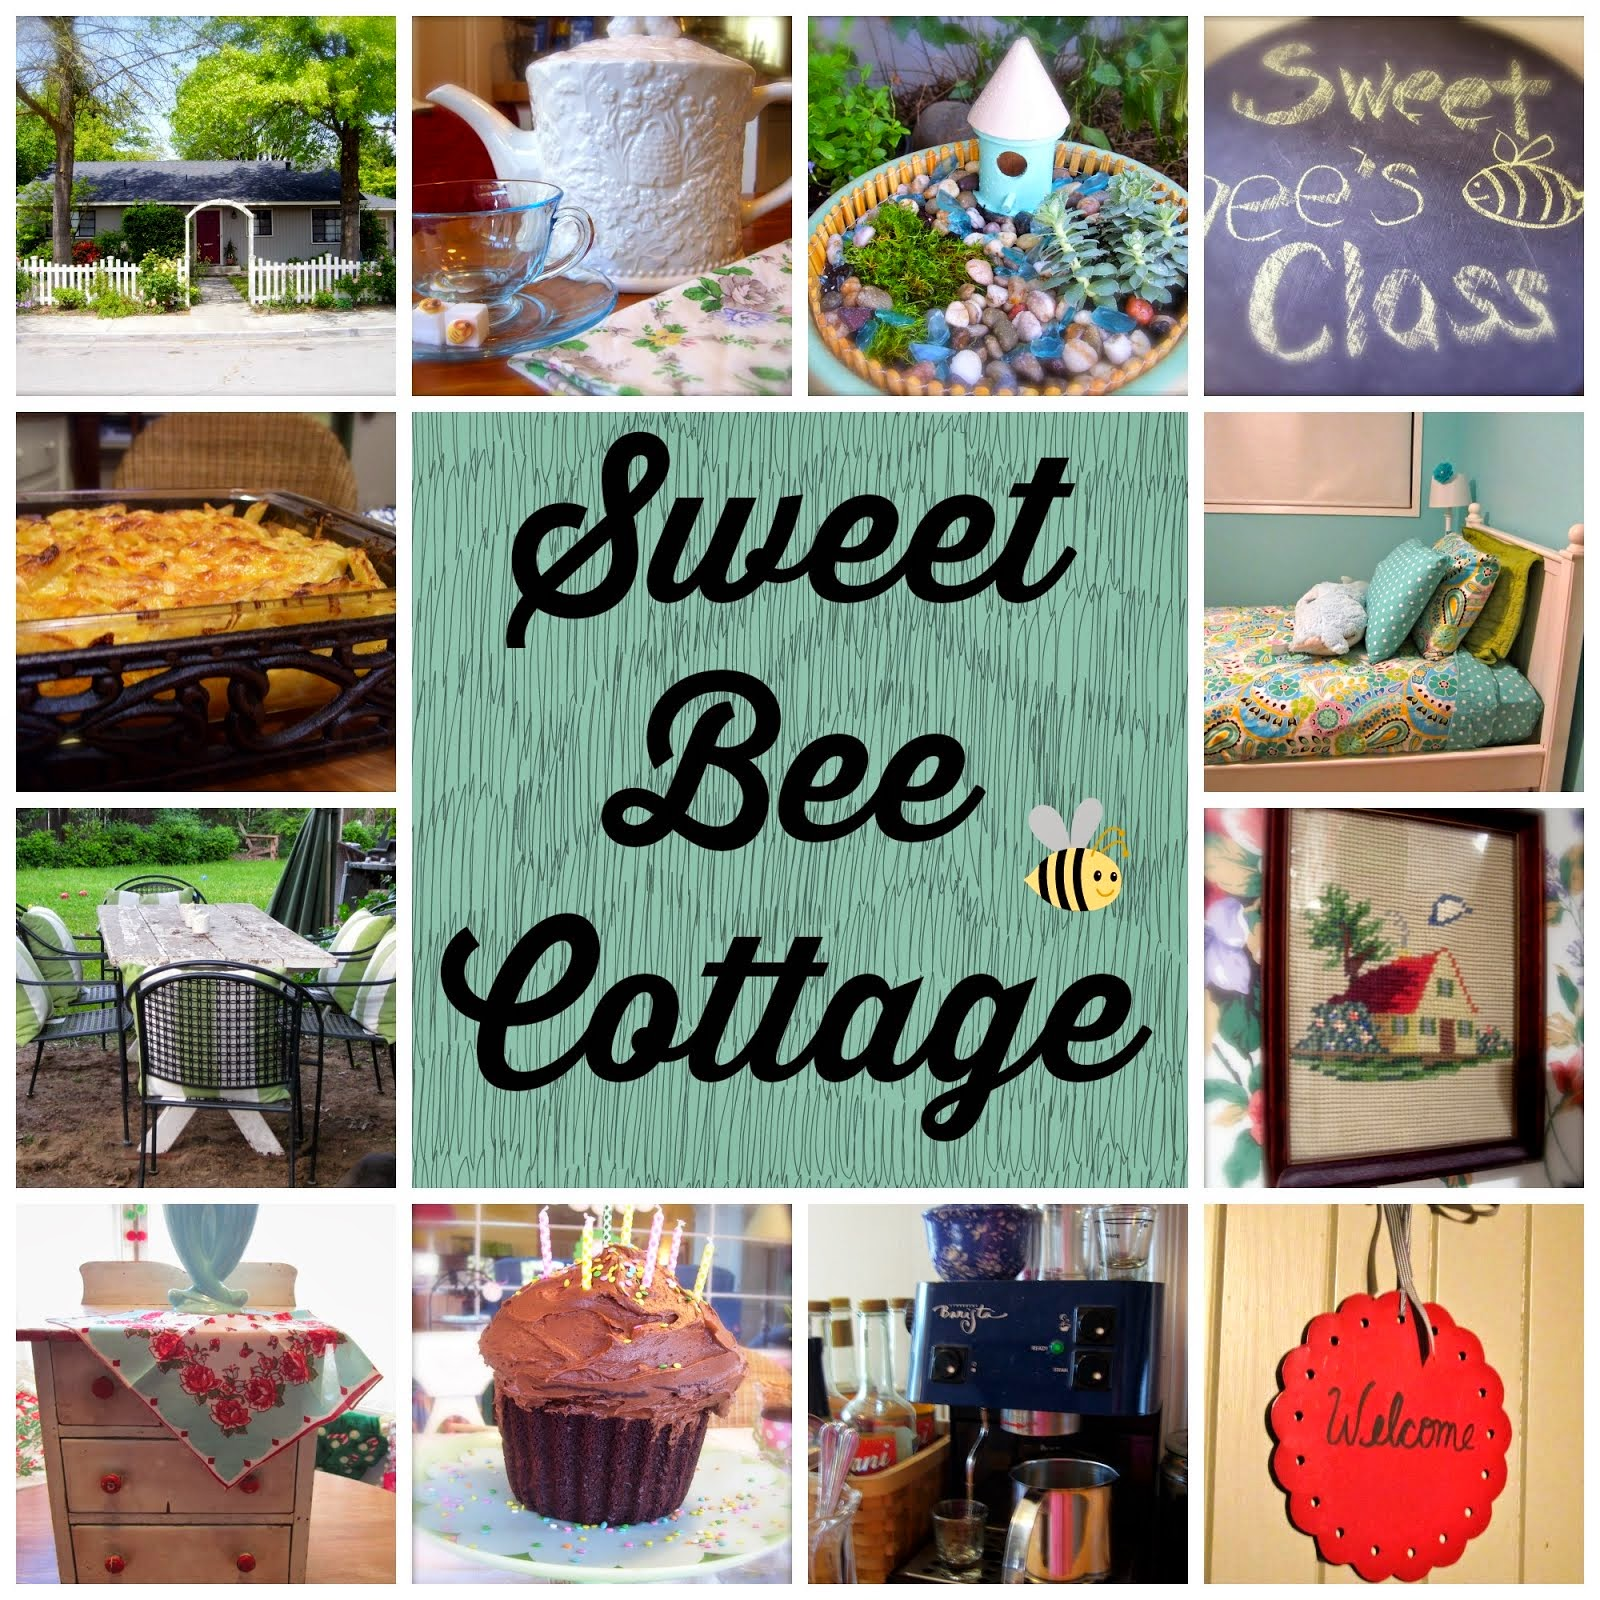 Sweet Bee Cottage on Facebook